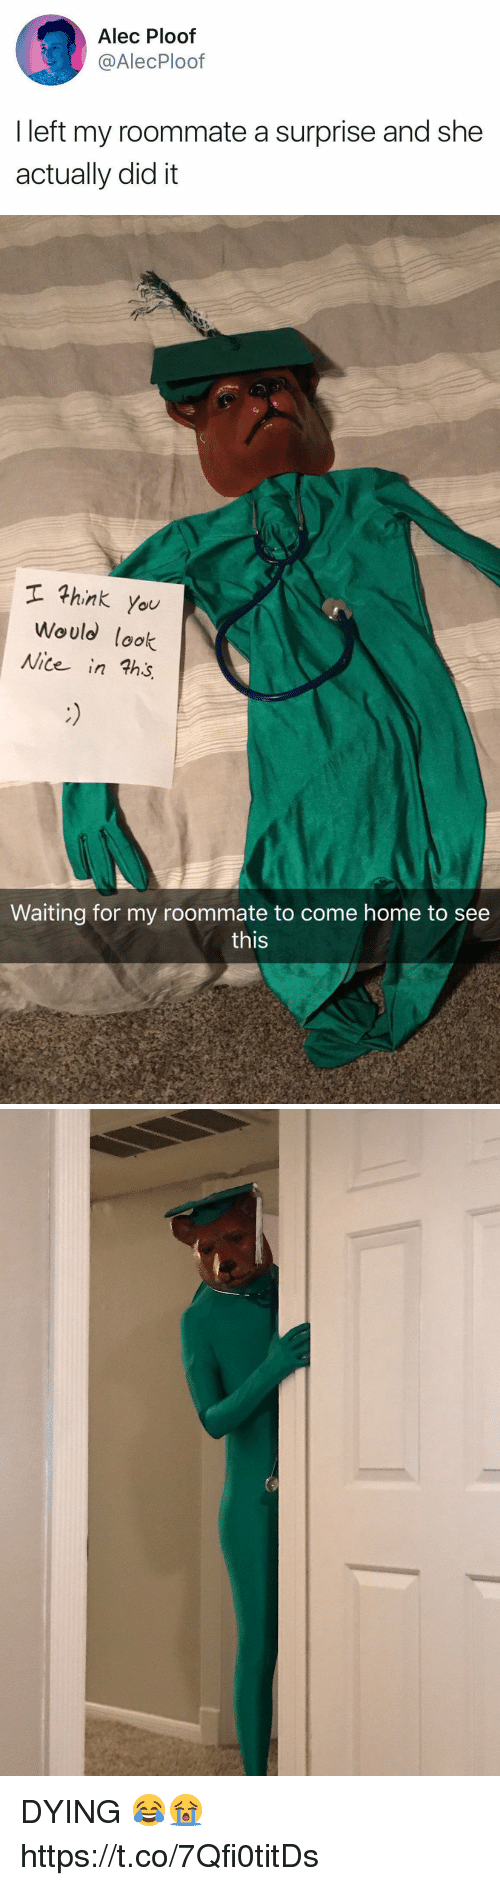 Roommate, Home, and Girl Memes: Alec Ploof  @AlecPloof  I left my roommate a surprise and she  actually did it   hink you  Would lok  Nite in ths  Waiting for my roommate to come home to see  this DYING 😂😭 https://t.co/7Qfi0titDs